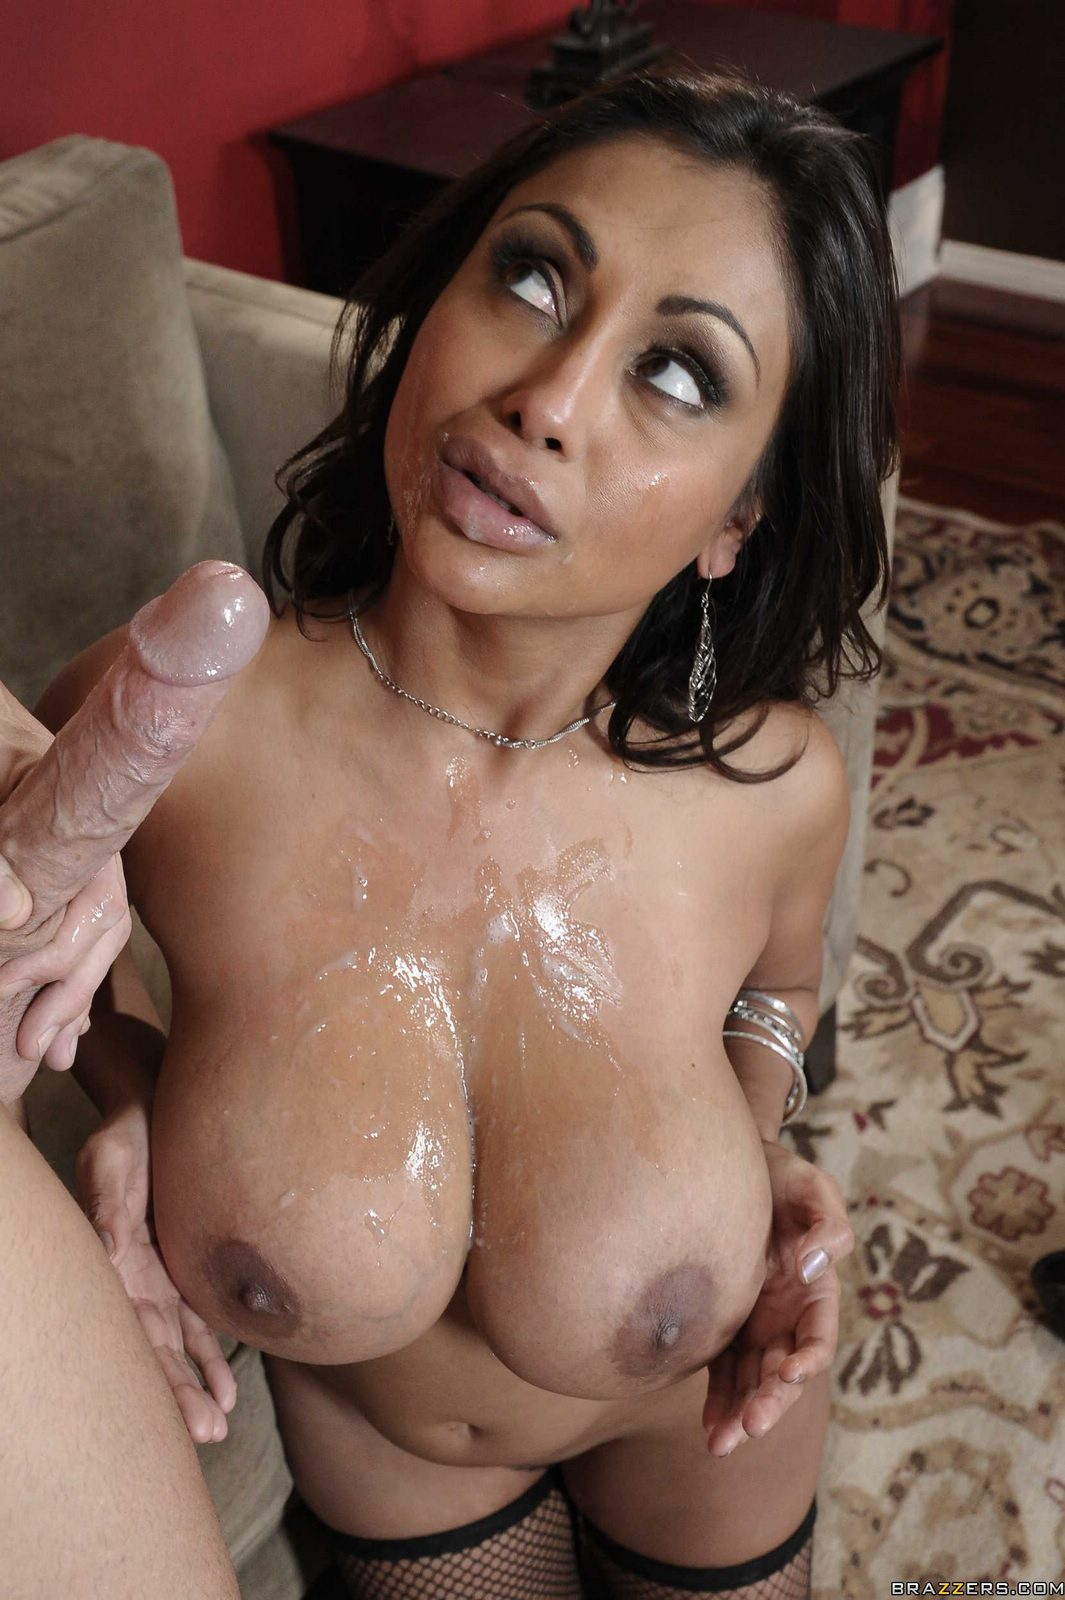 Think, that Porn star priya rai x would not